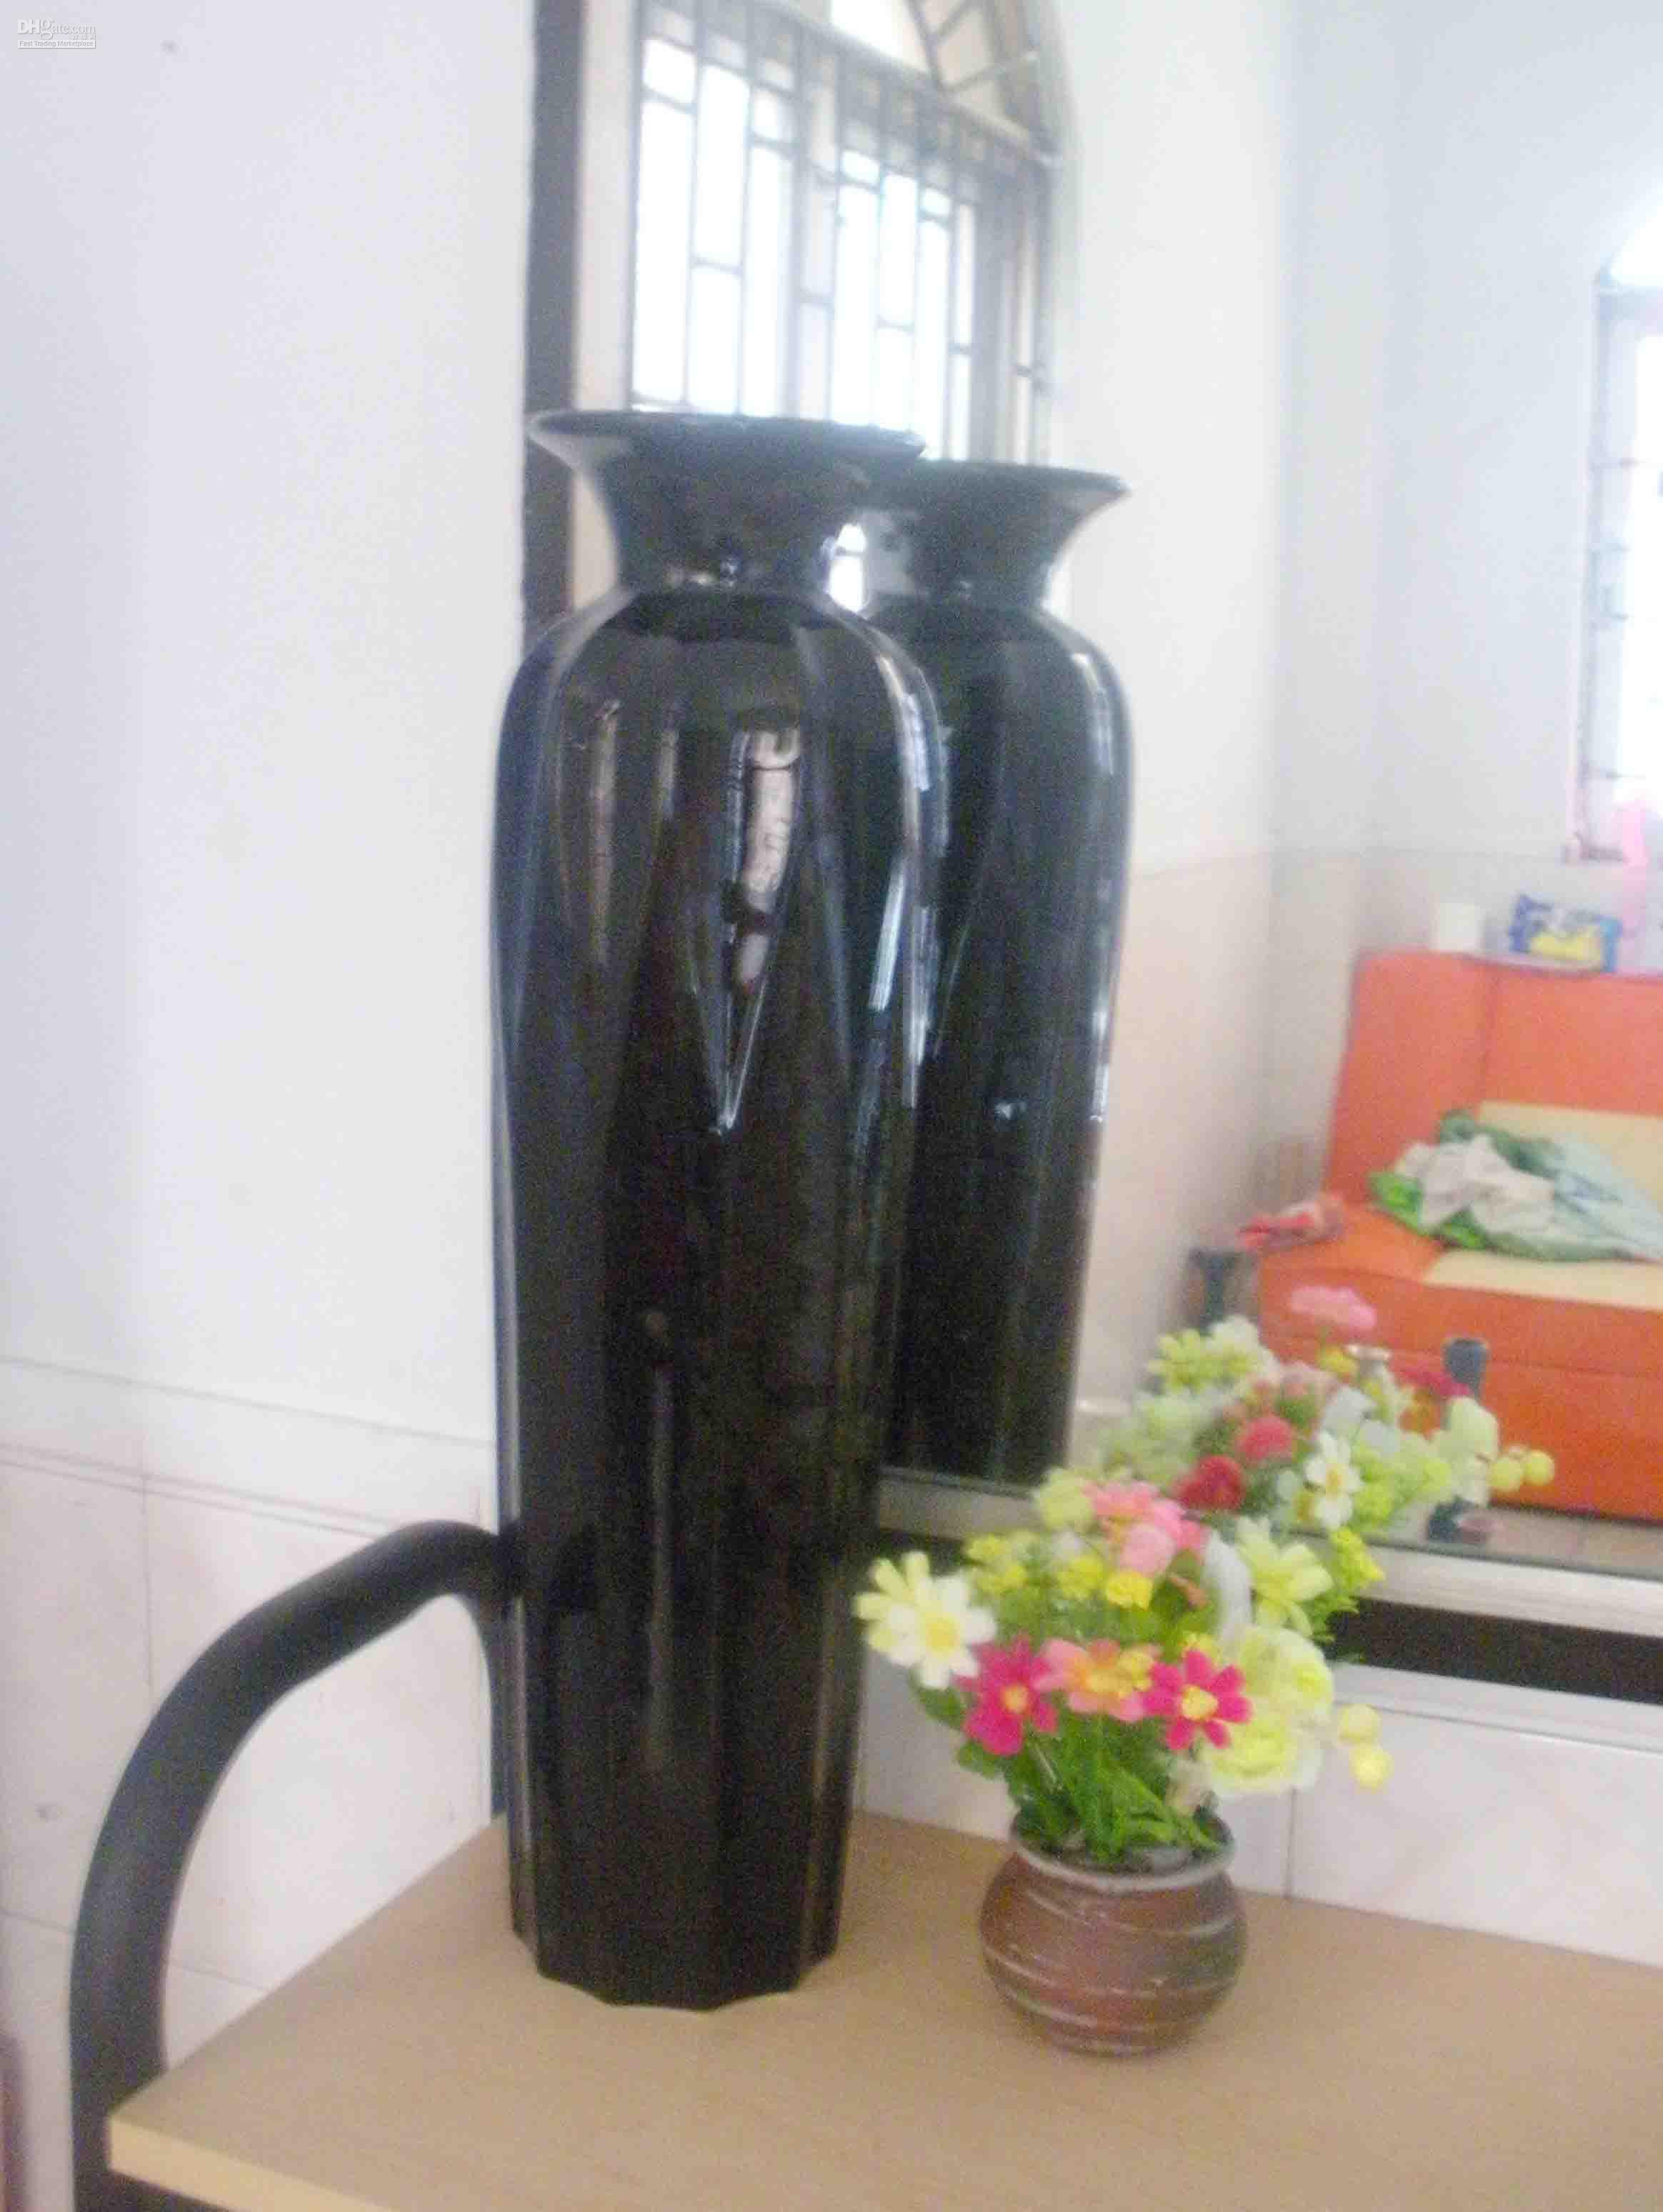 4 Foot Tall Floor Vases Of 4 Foot Floor Vase Awesome Big Flower Vases Tinaminter Nicnacmag with Regard to 4 Foot Floor Vase Awesome Big Flower Vases Tinaminter